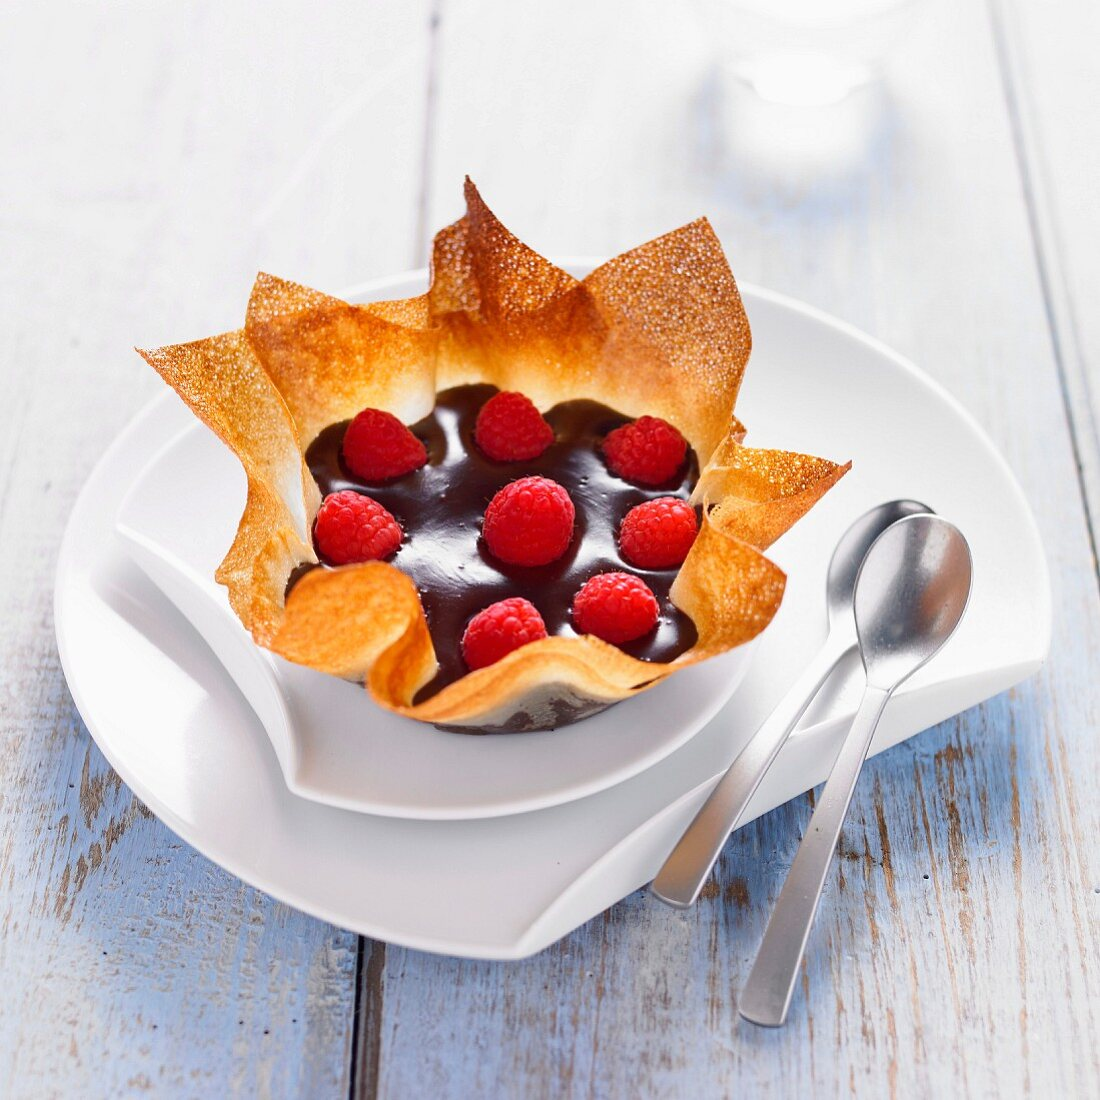 Dark chocolate cream and raspberries in a thin flower-shaped pastry casing